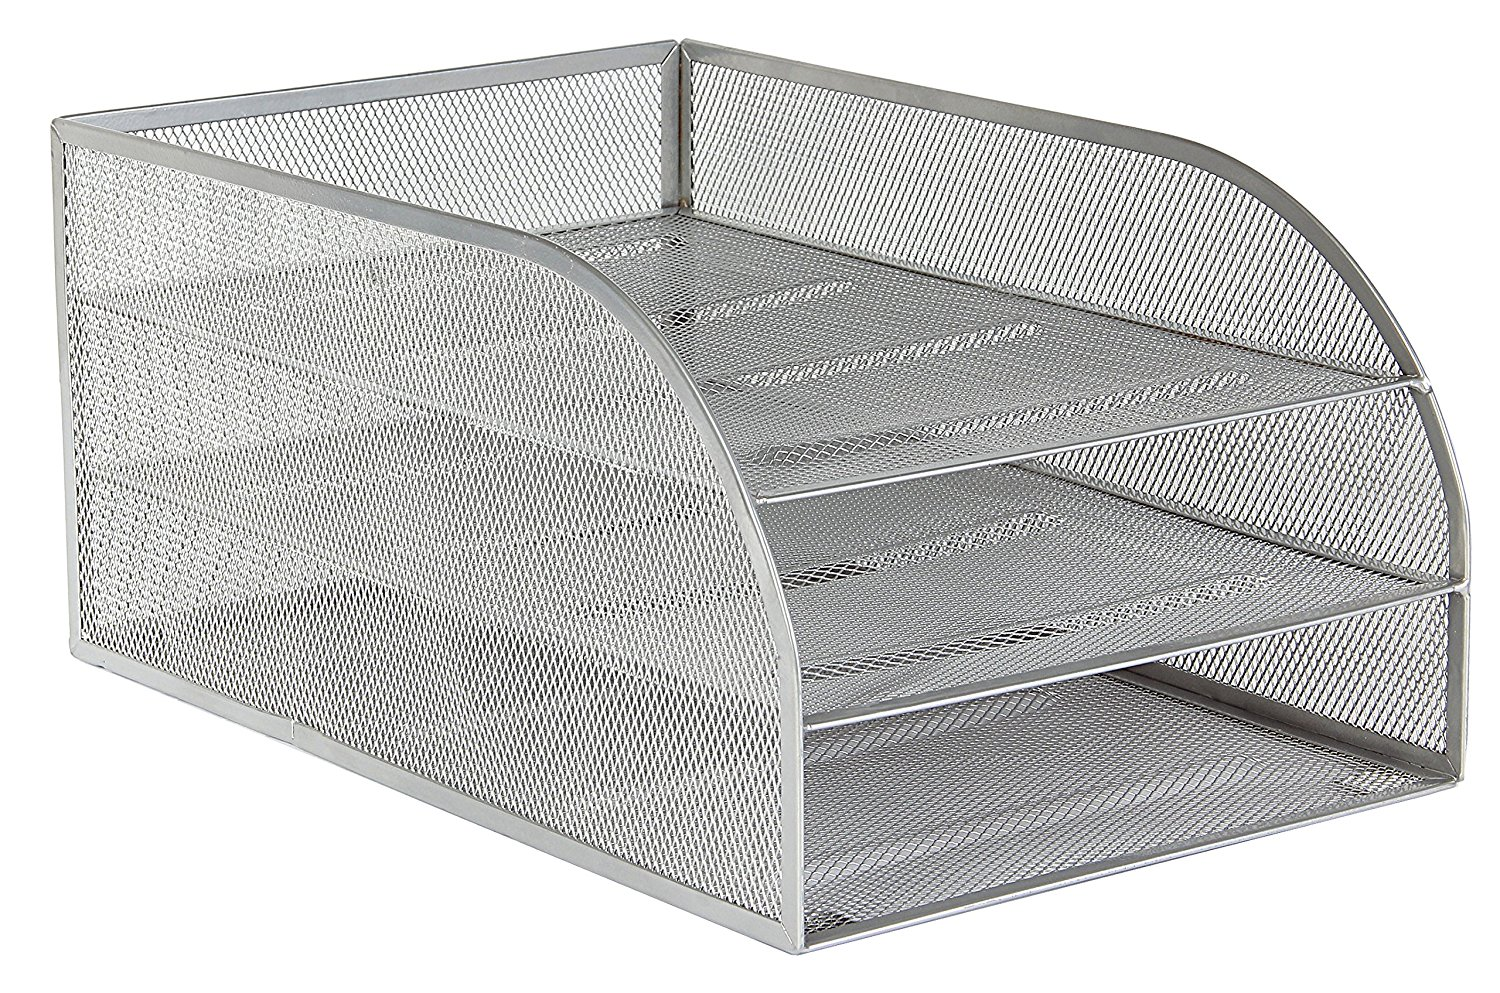 Osco Mesh 3 Tier Assembled Tray (Silver)